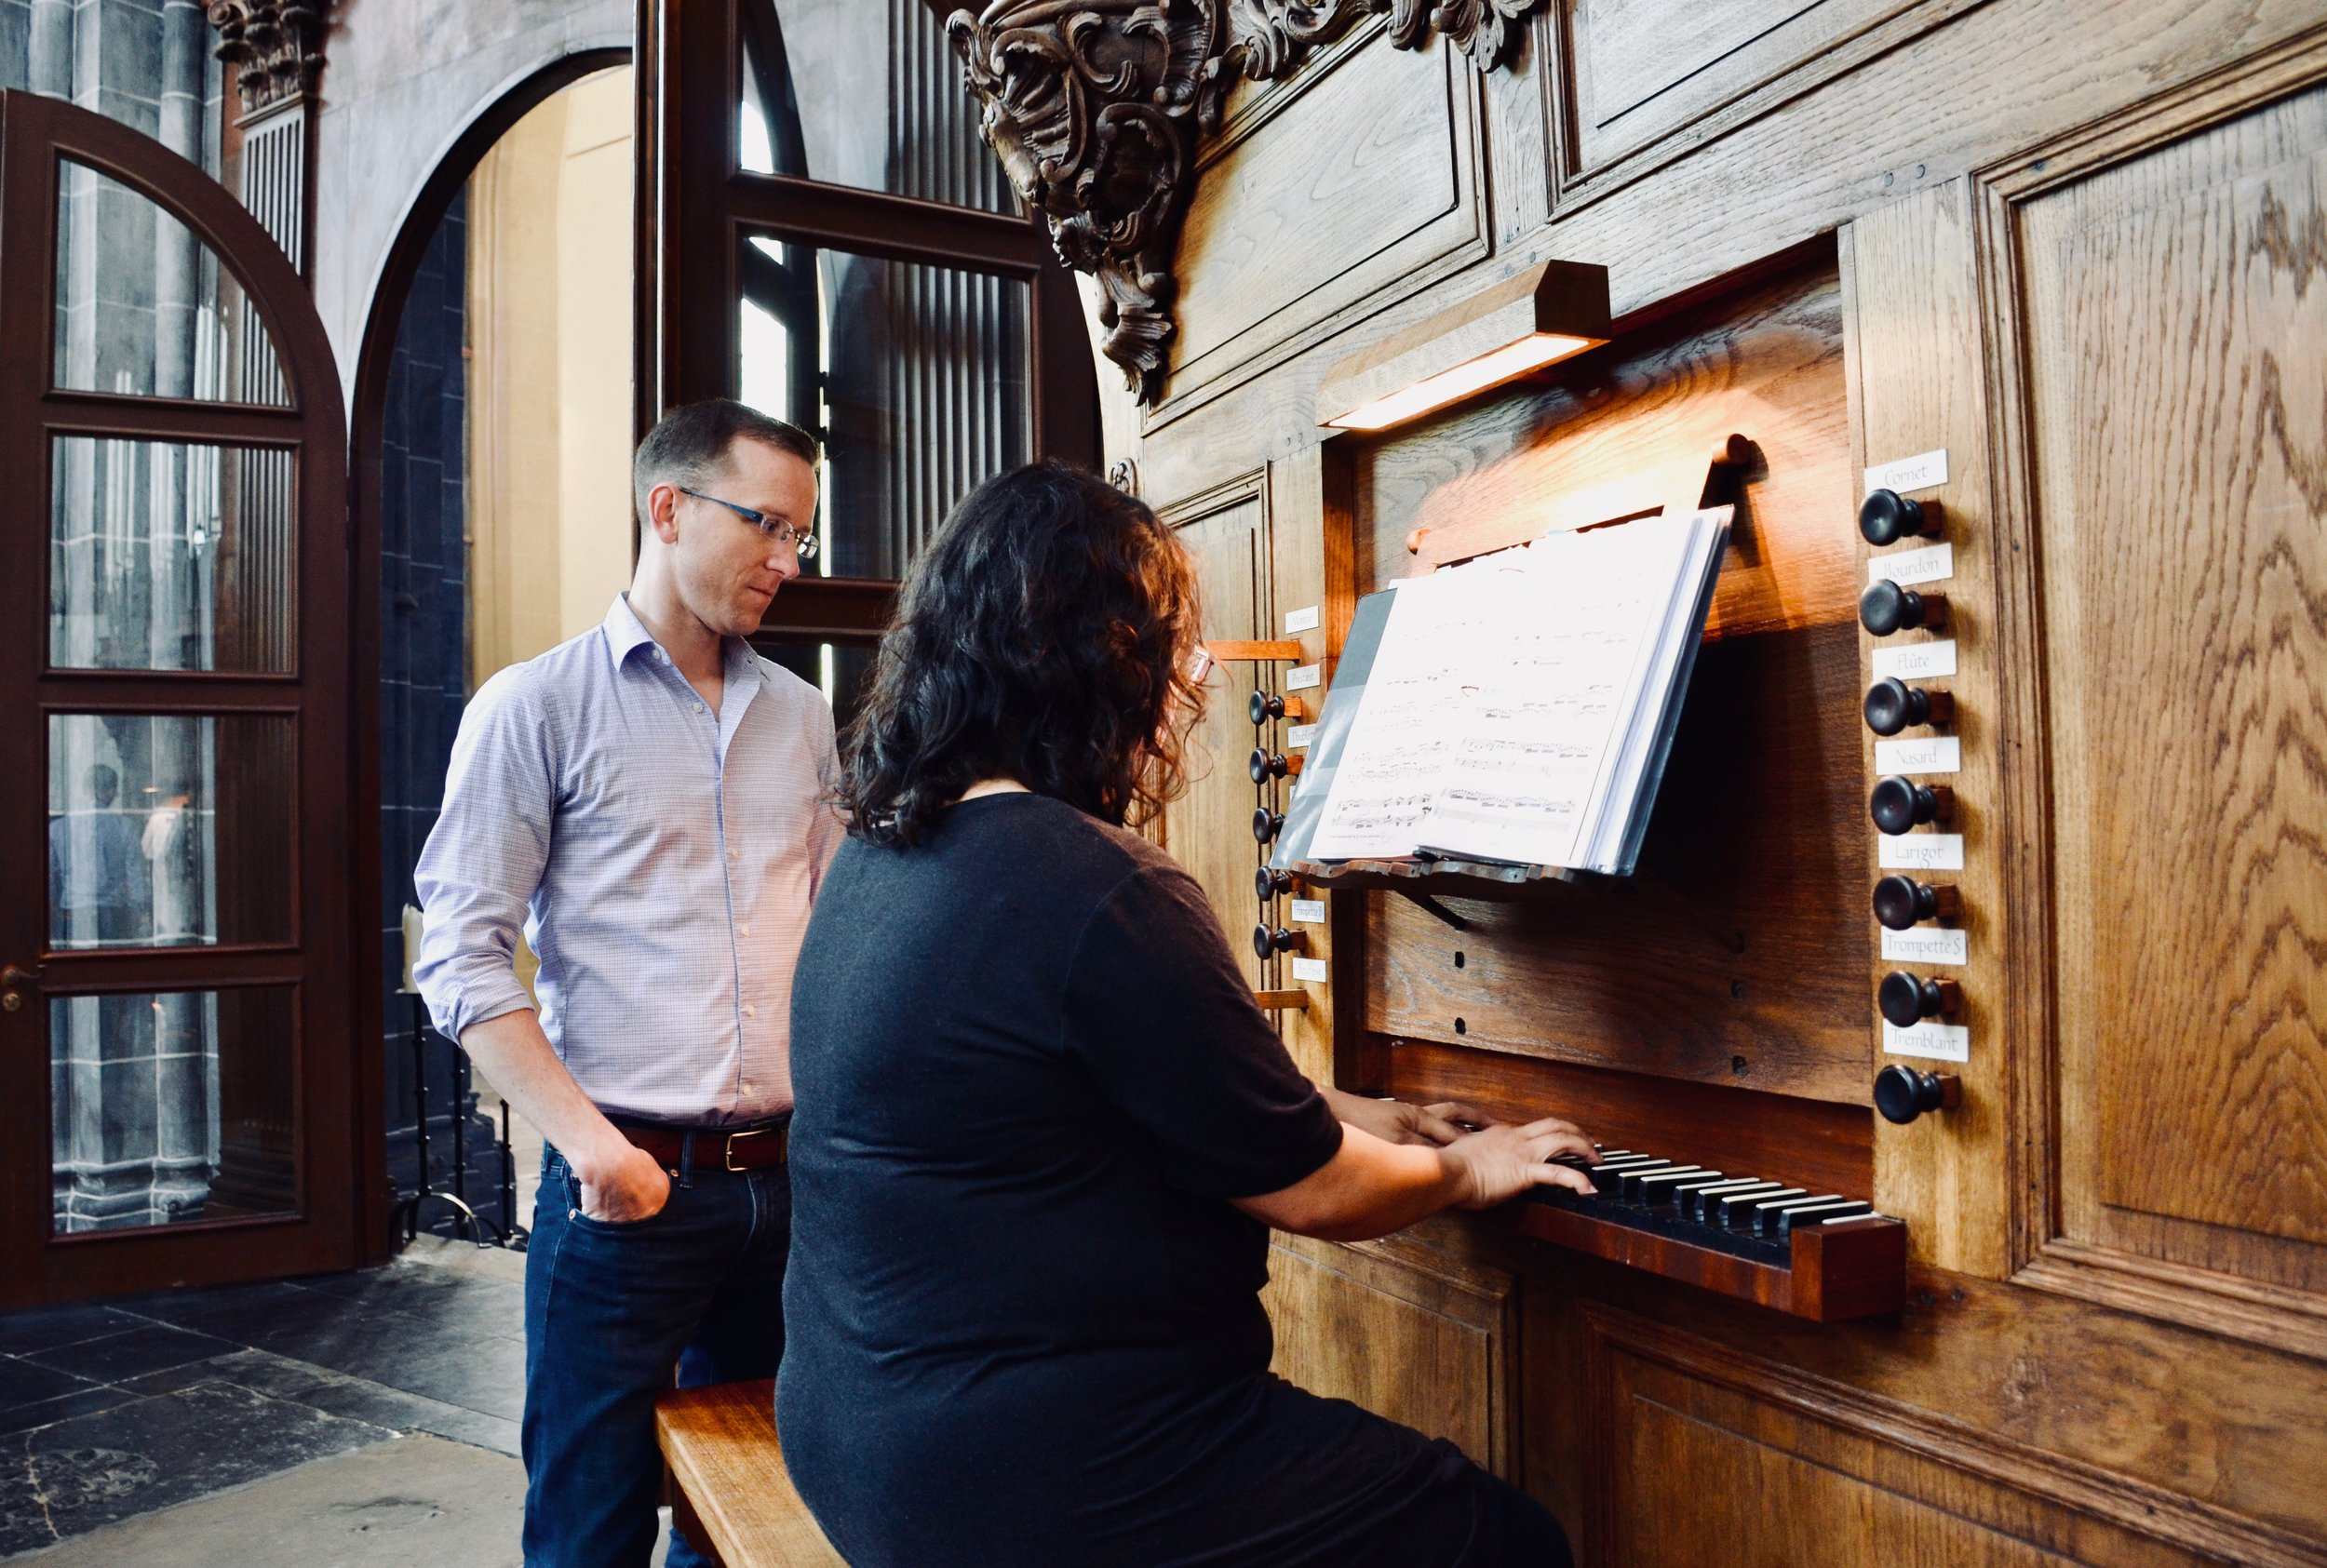 Jennifer Hsiao plays the 1742 Le Picard organ in Martinikerk, Groningen, with Christian Lane. Boston Organ Studio.